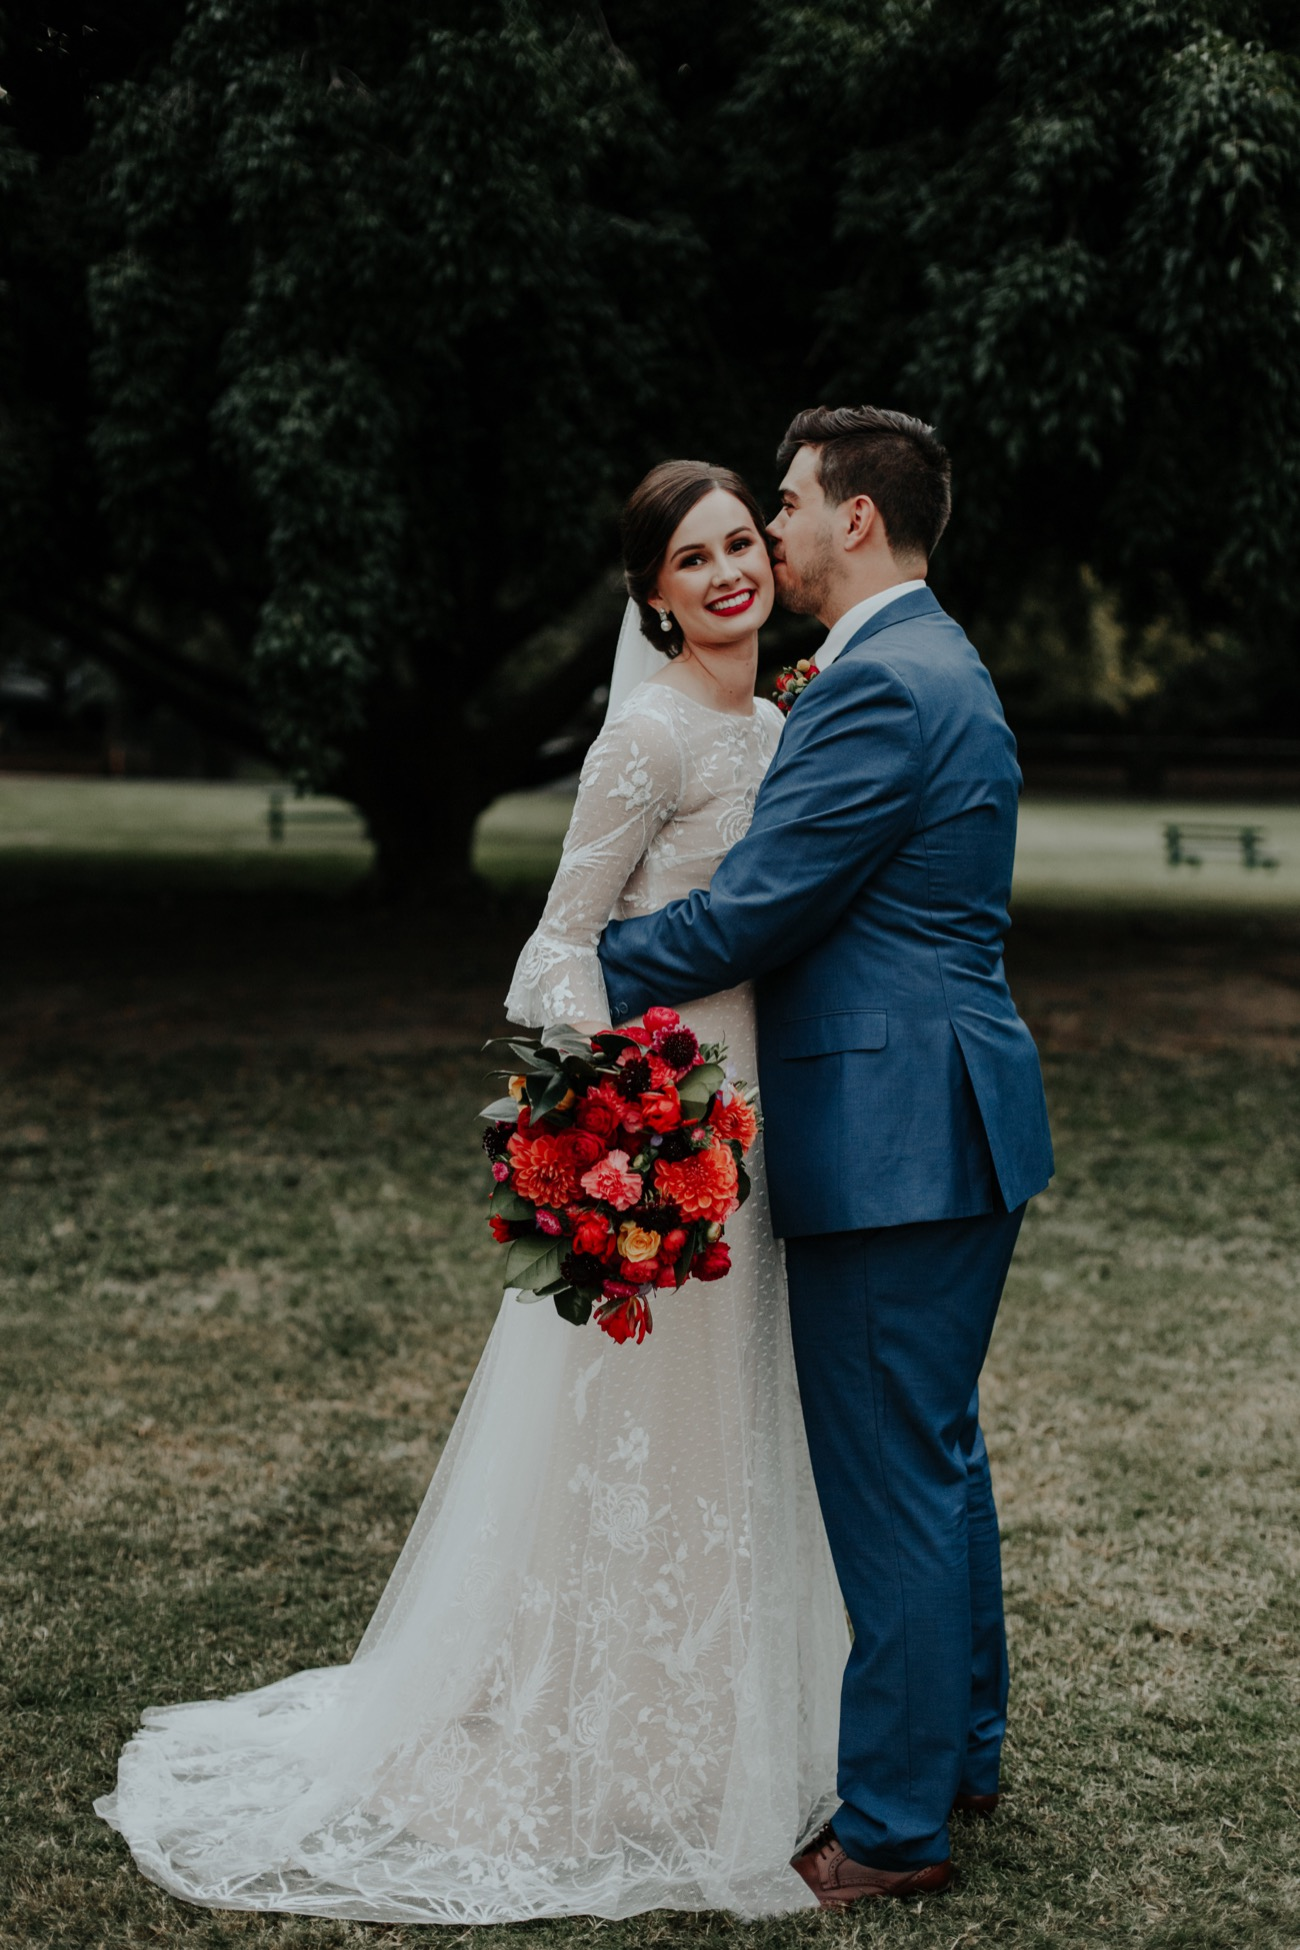 Hayley & Evan - I absolutely loved working with Jennifer. My wedding dress is more than I could have hoped for and fit like a glove. Putting it on truly made me feel like a bride and excited for the rest of the day. I had so much fun wearing it.My dress was one of Jennifer's base designs with the sleeves from another one of her other dresses.She also customised the zip enclosure to include buttons from my mothers wedding dress which was very special.Thanks again, Jennifer!